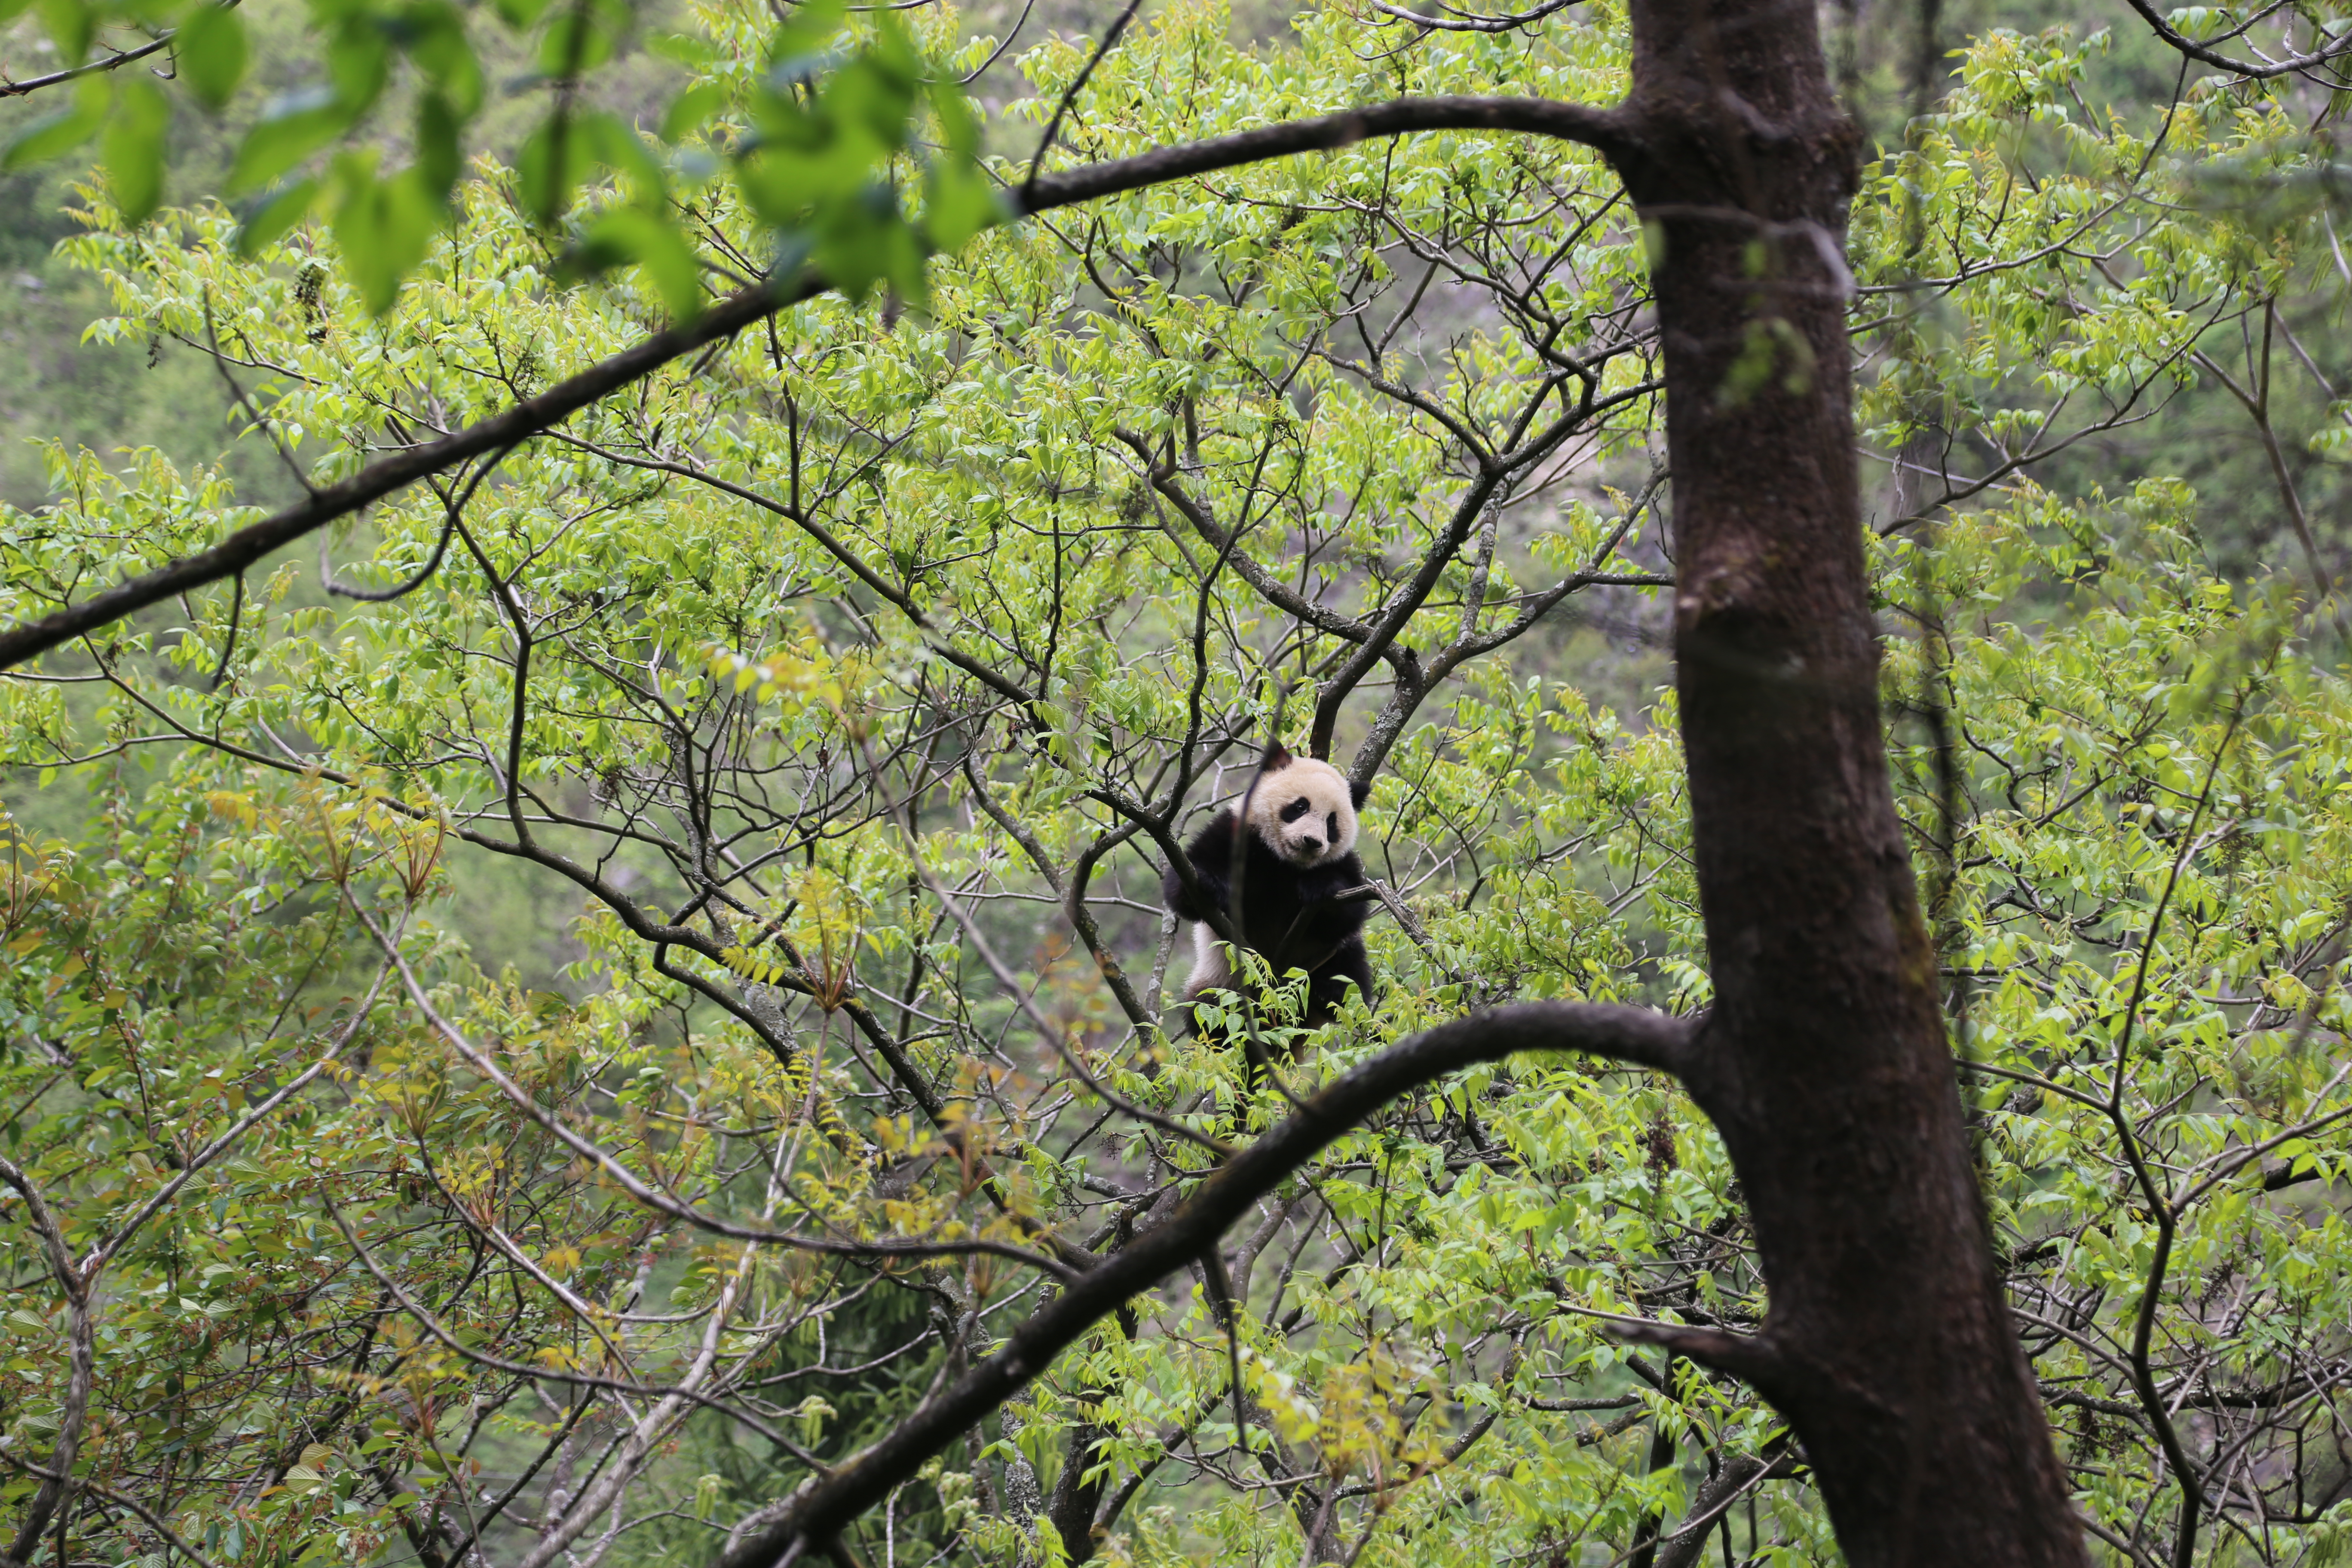 Preparing for release. A young panda destined for reintroduction enjoys hanging out in the trees in his large reintroduction training pen at Wolong's Hetauping reintroduction training facility.